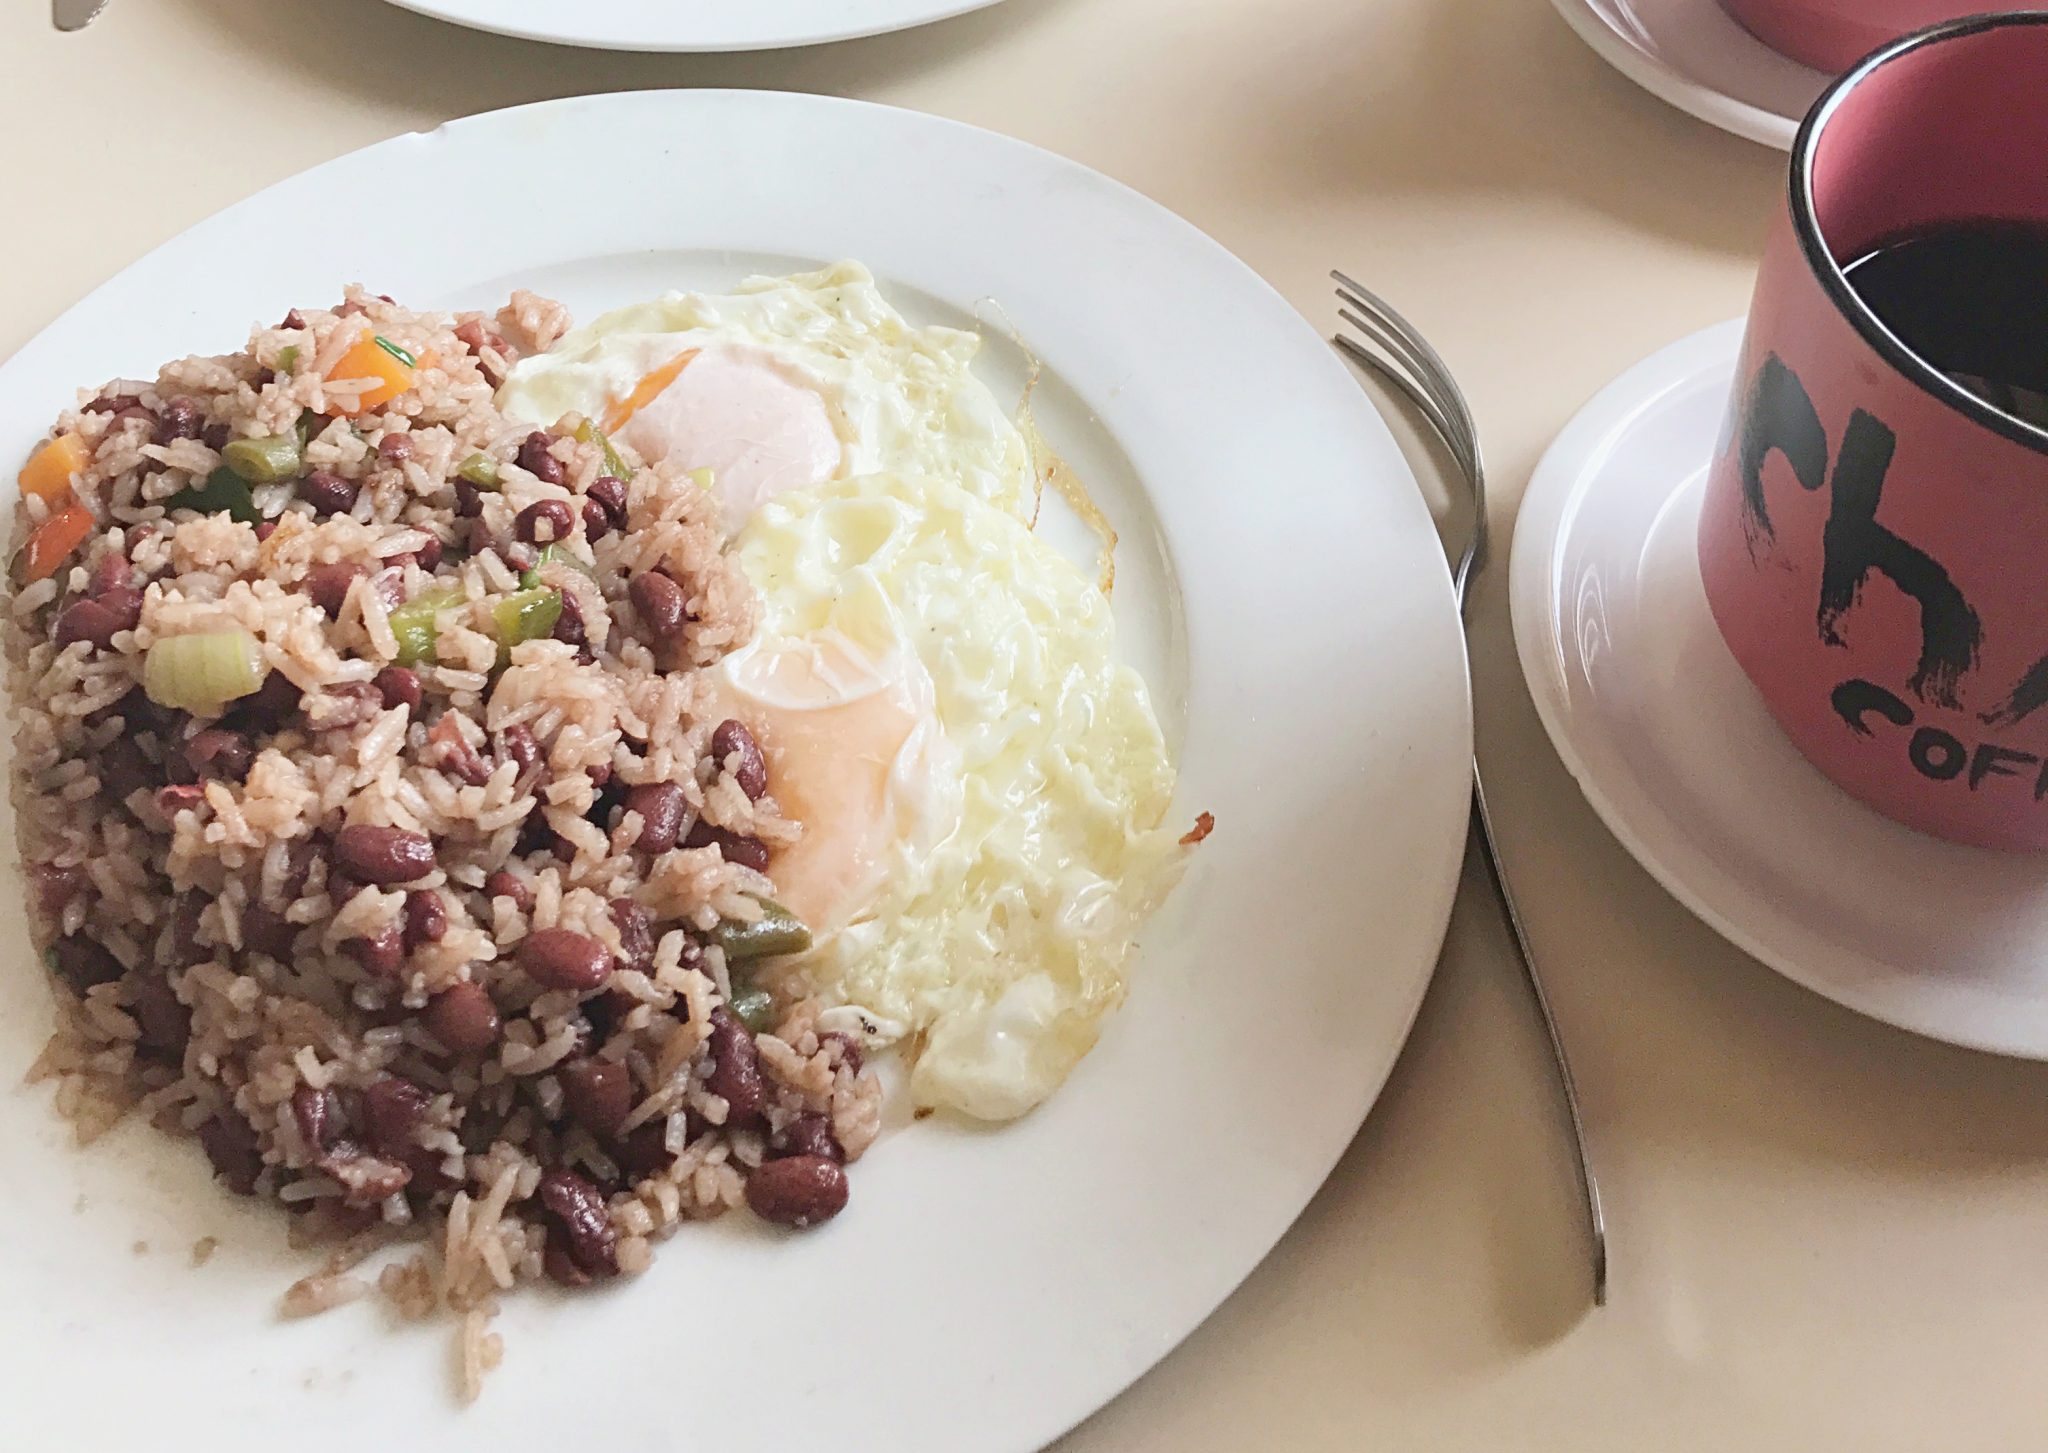 Gallo Pinto Breakfast Costa Rica